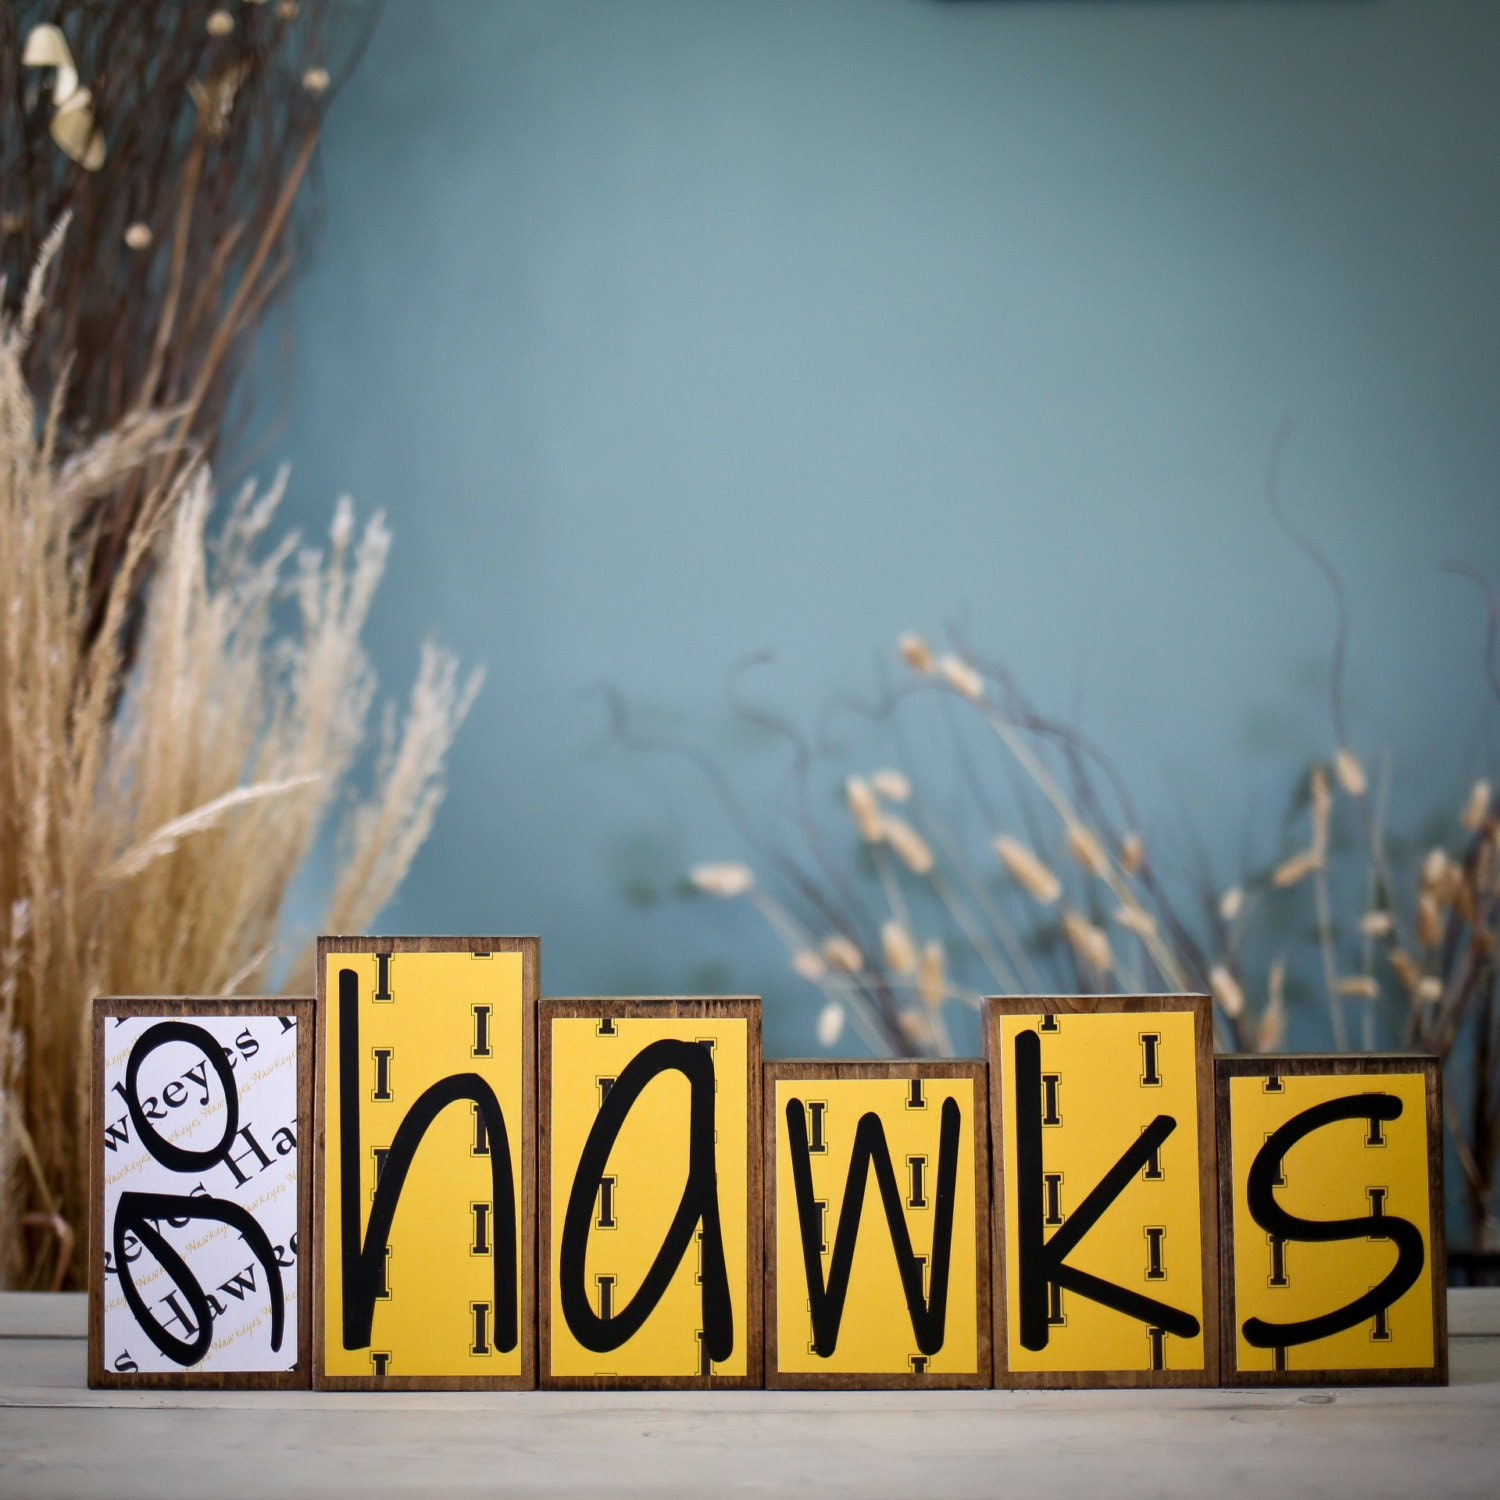 Home decor wood blocks go hawks iowa hawkeyes herky for Iowa hawkeye decor